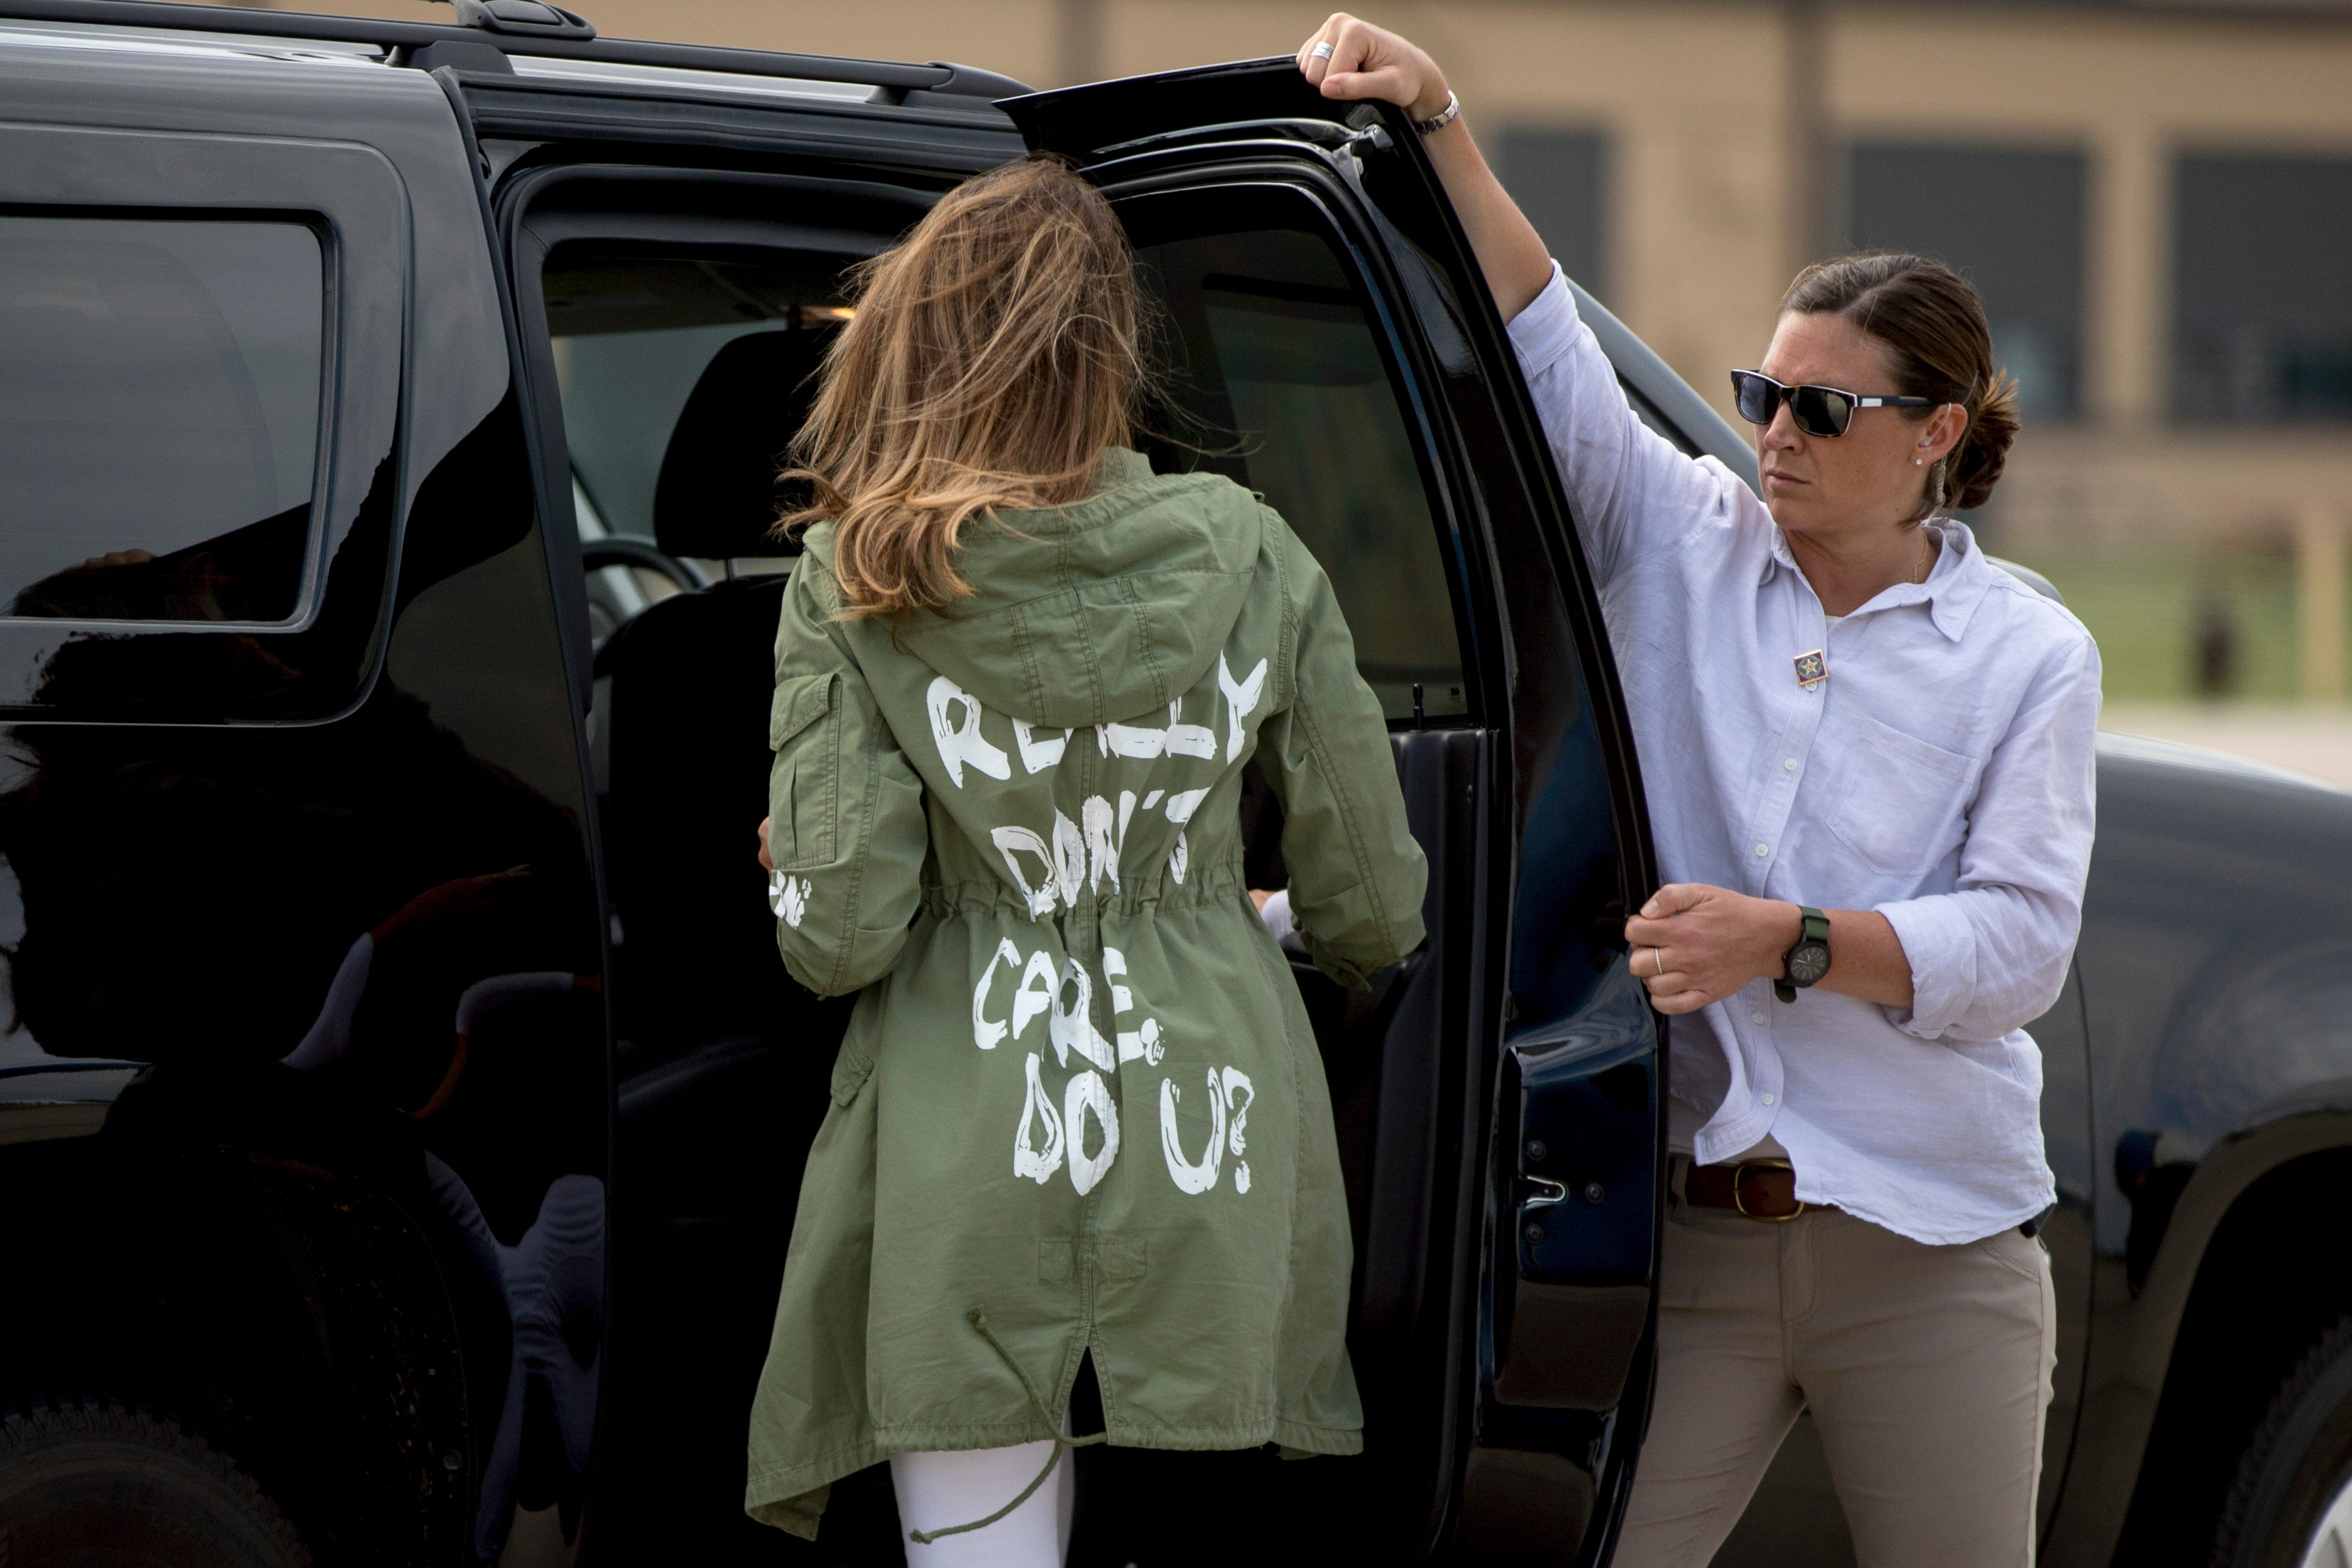 Melania Trump's jacket is the Trump administration